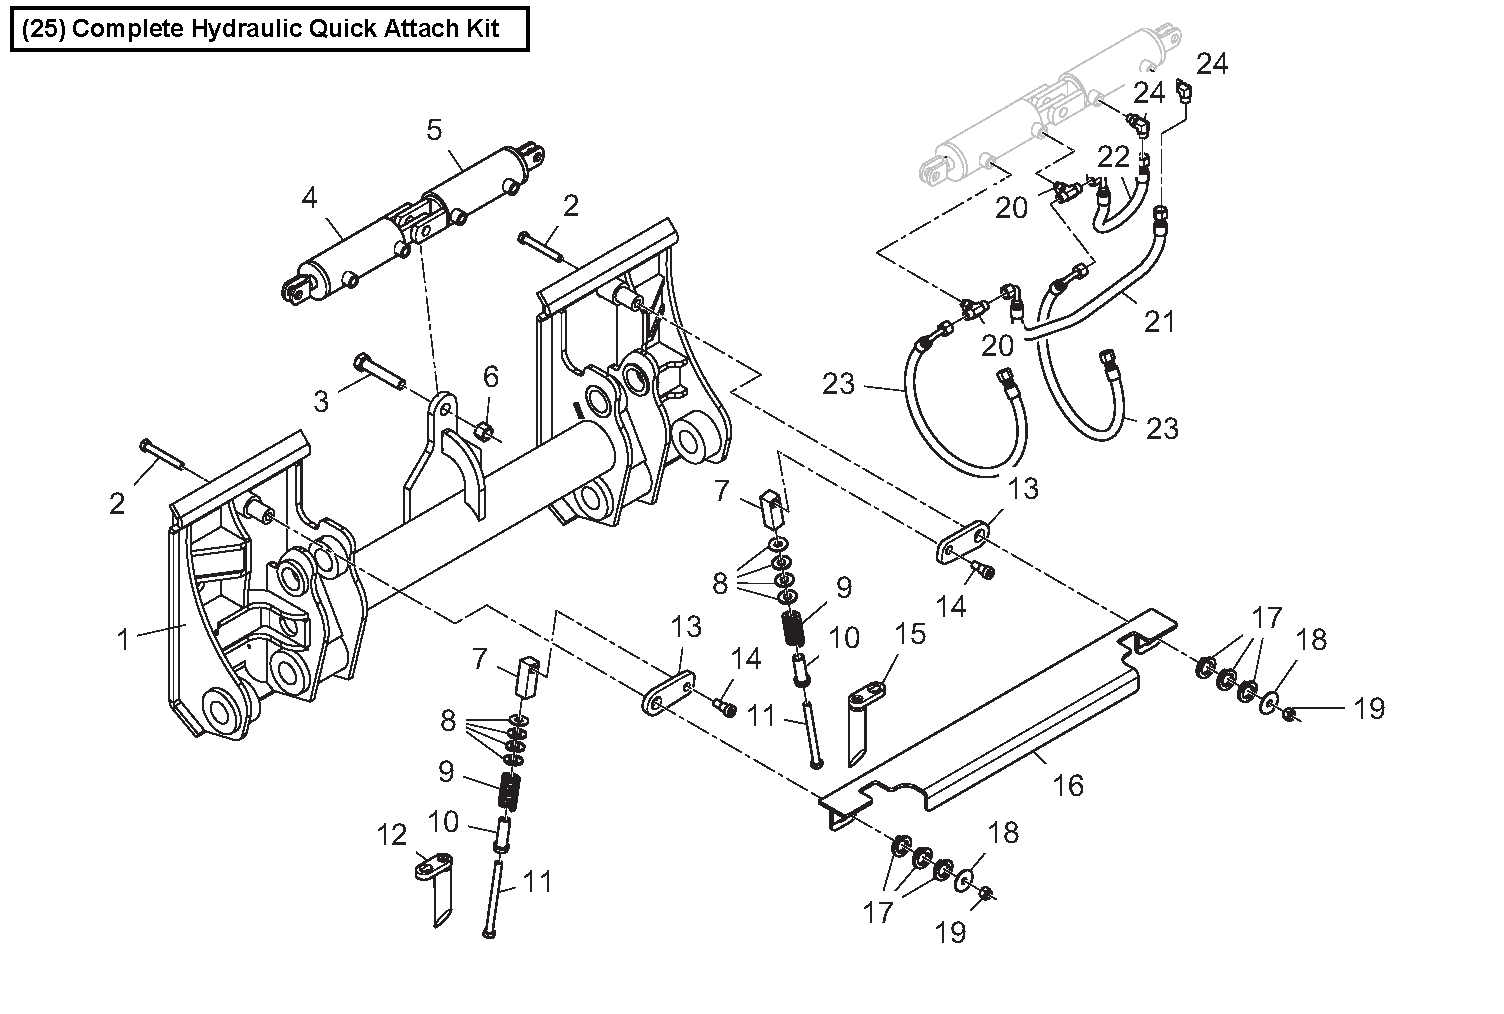 Diagram 8-3A Quick Attach - Hydraulic